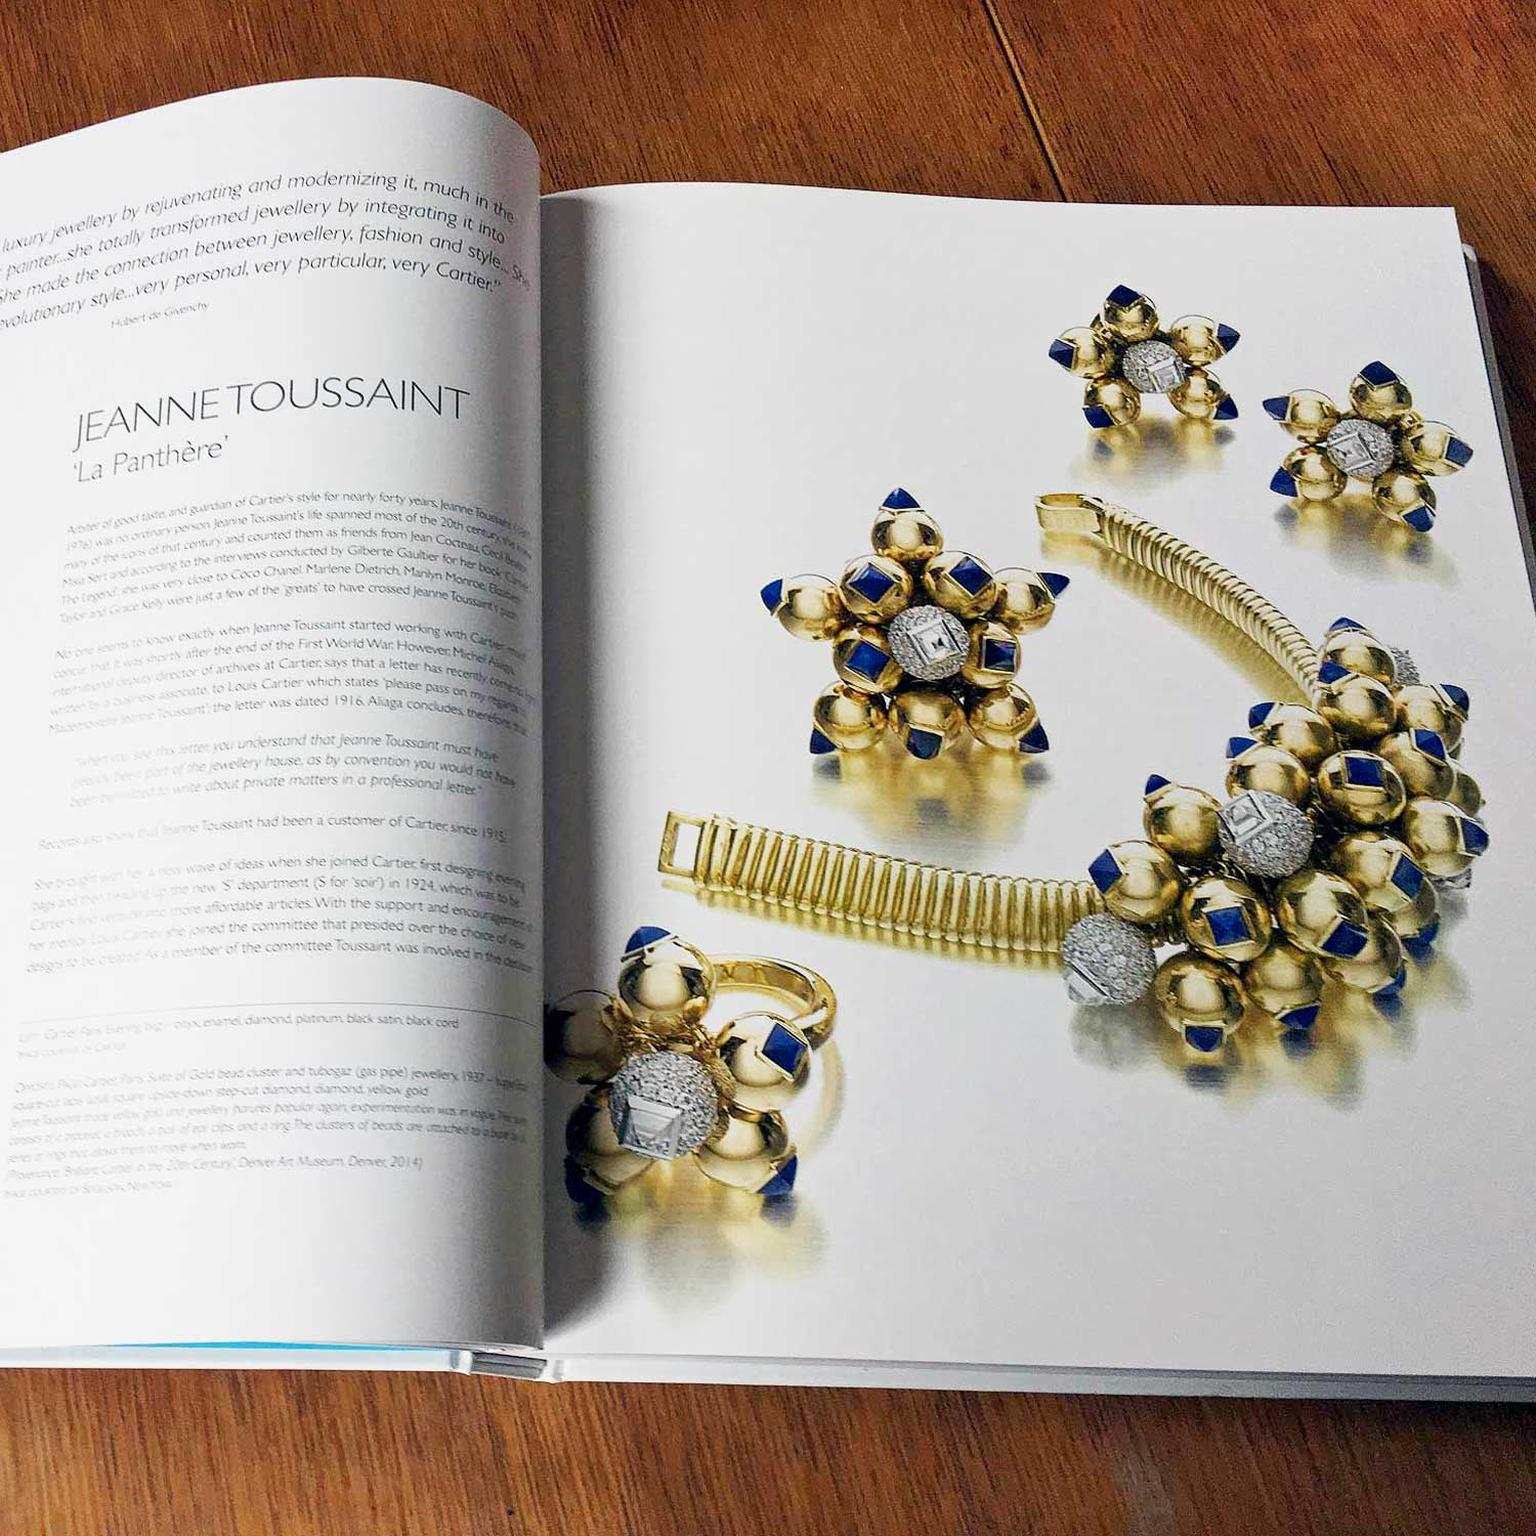 Women Jewellery Designers book Jeanne-Toussiant